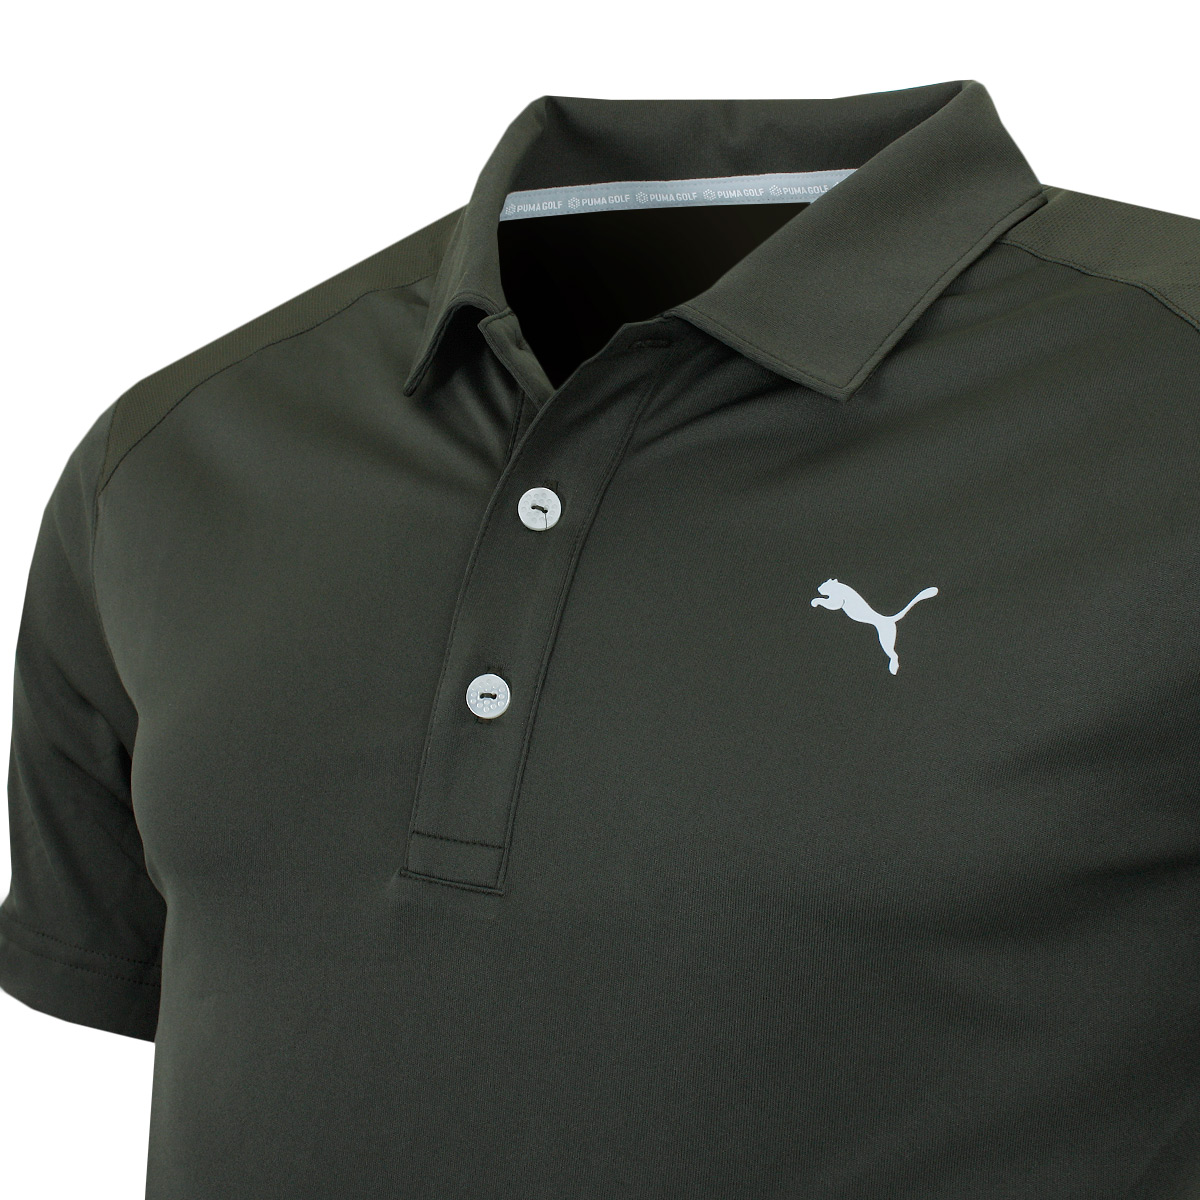 Puma-Golf-Mens-Essential-Pounce-Polo-Shirt-DryCell-Lightweight-Tech-43-OFF-RRP thumbnail 19